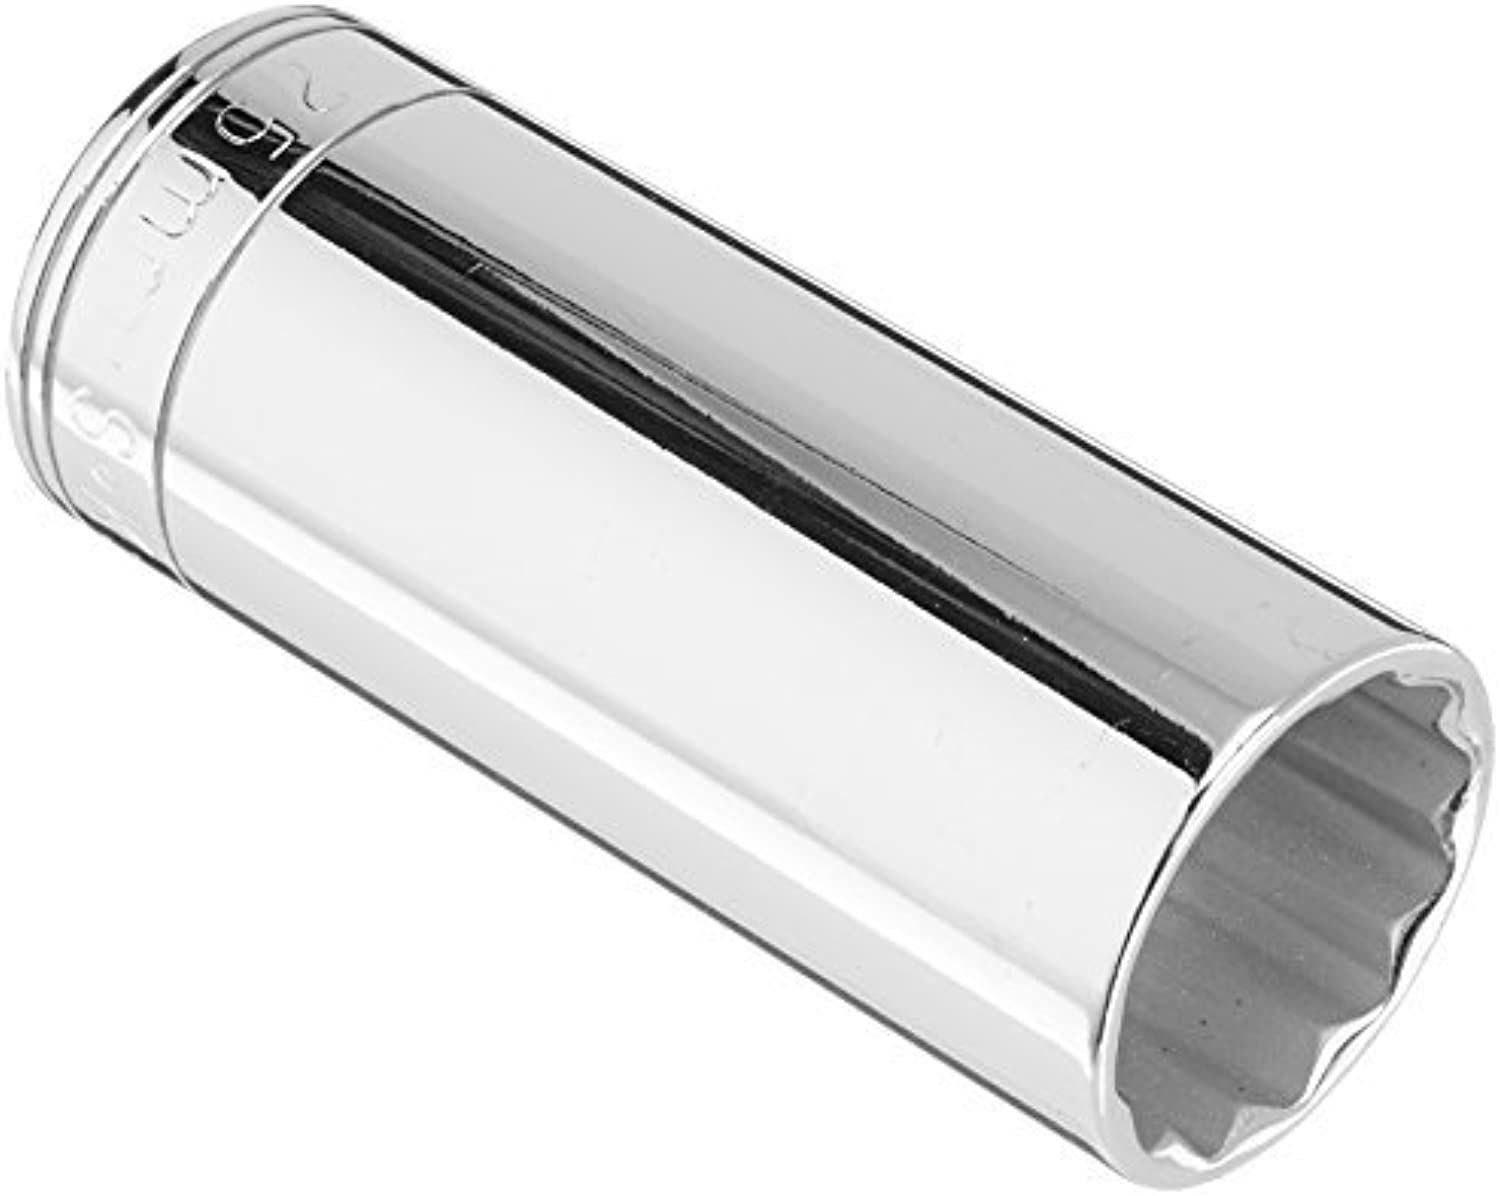 SK Hand Tool Tool Tool 48025 12 Point 1 2-Inch Drive Deep Socket, 25mm, Chrome by SK Hand Tool B01LZ4LHOO |  